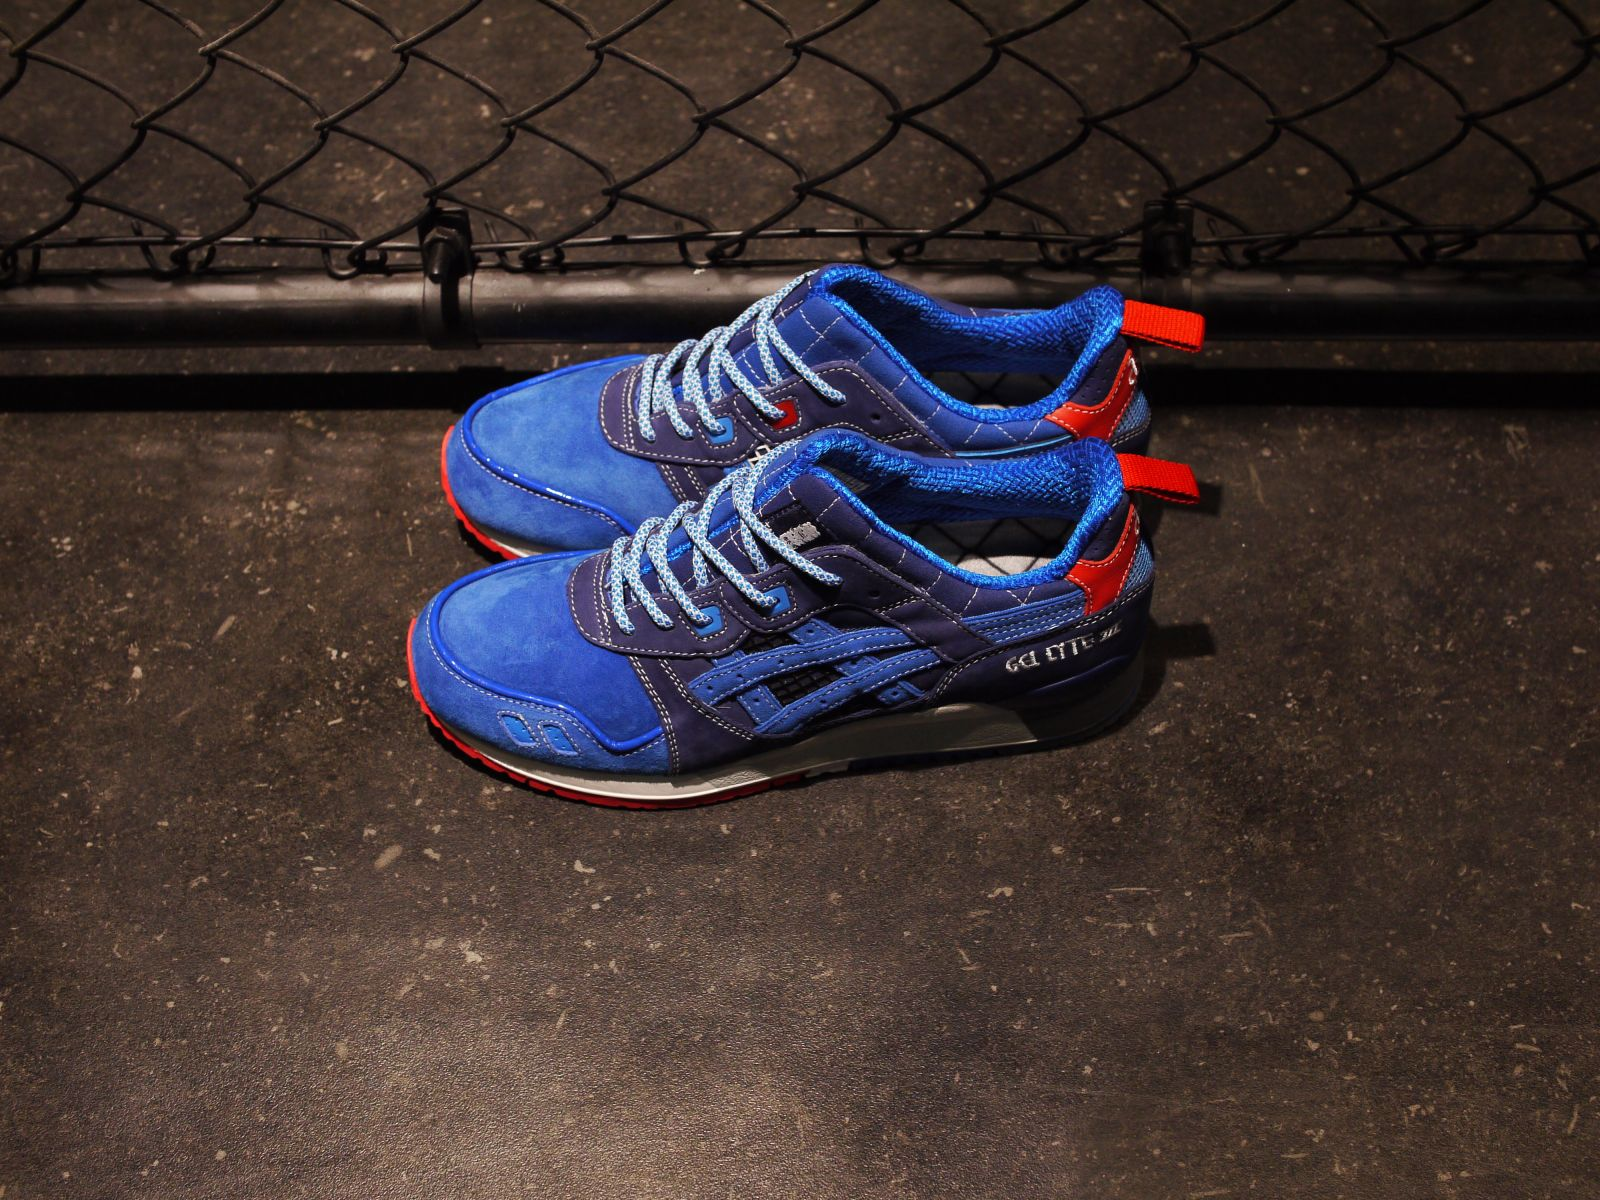 558f8705fa70 Asics Is Celebrating 25 Years of the Gel-Lyte III in a Major Way ...